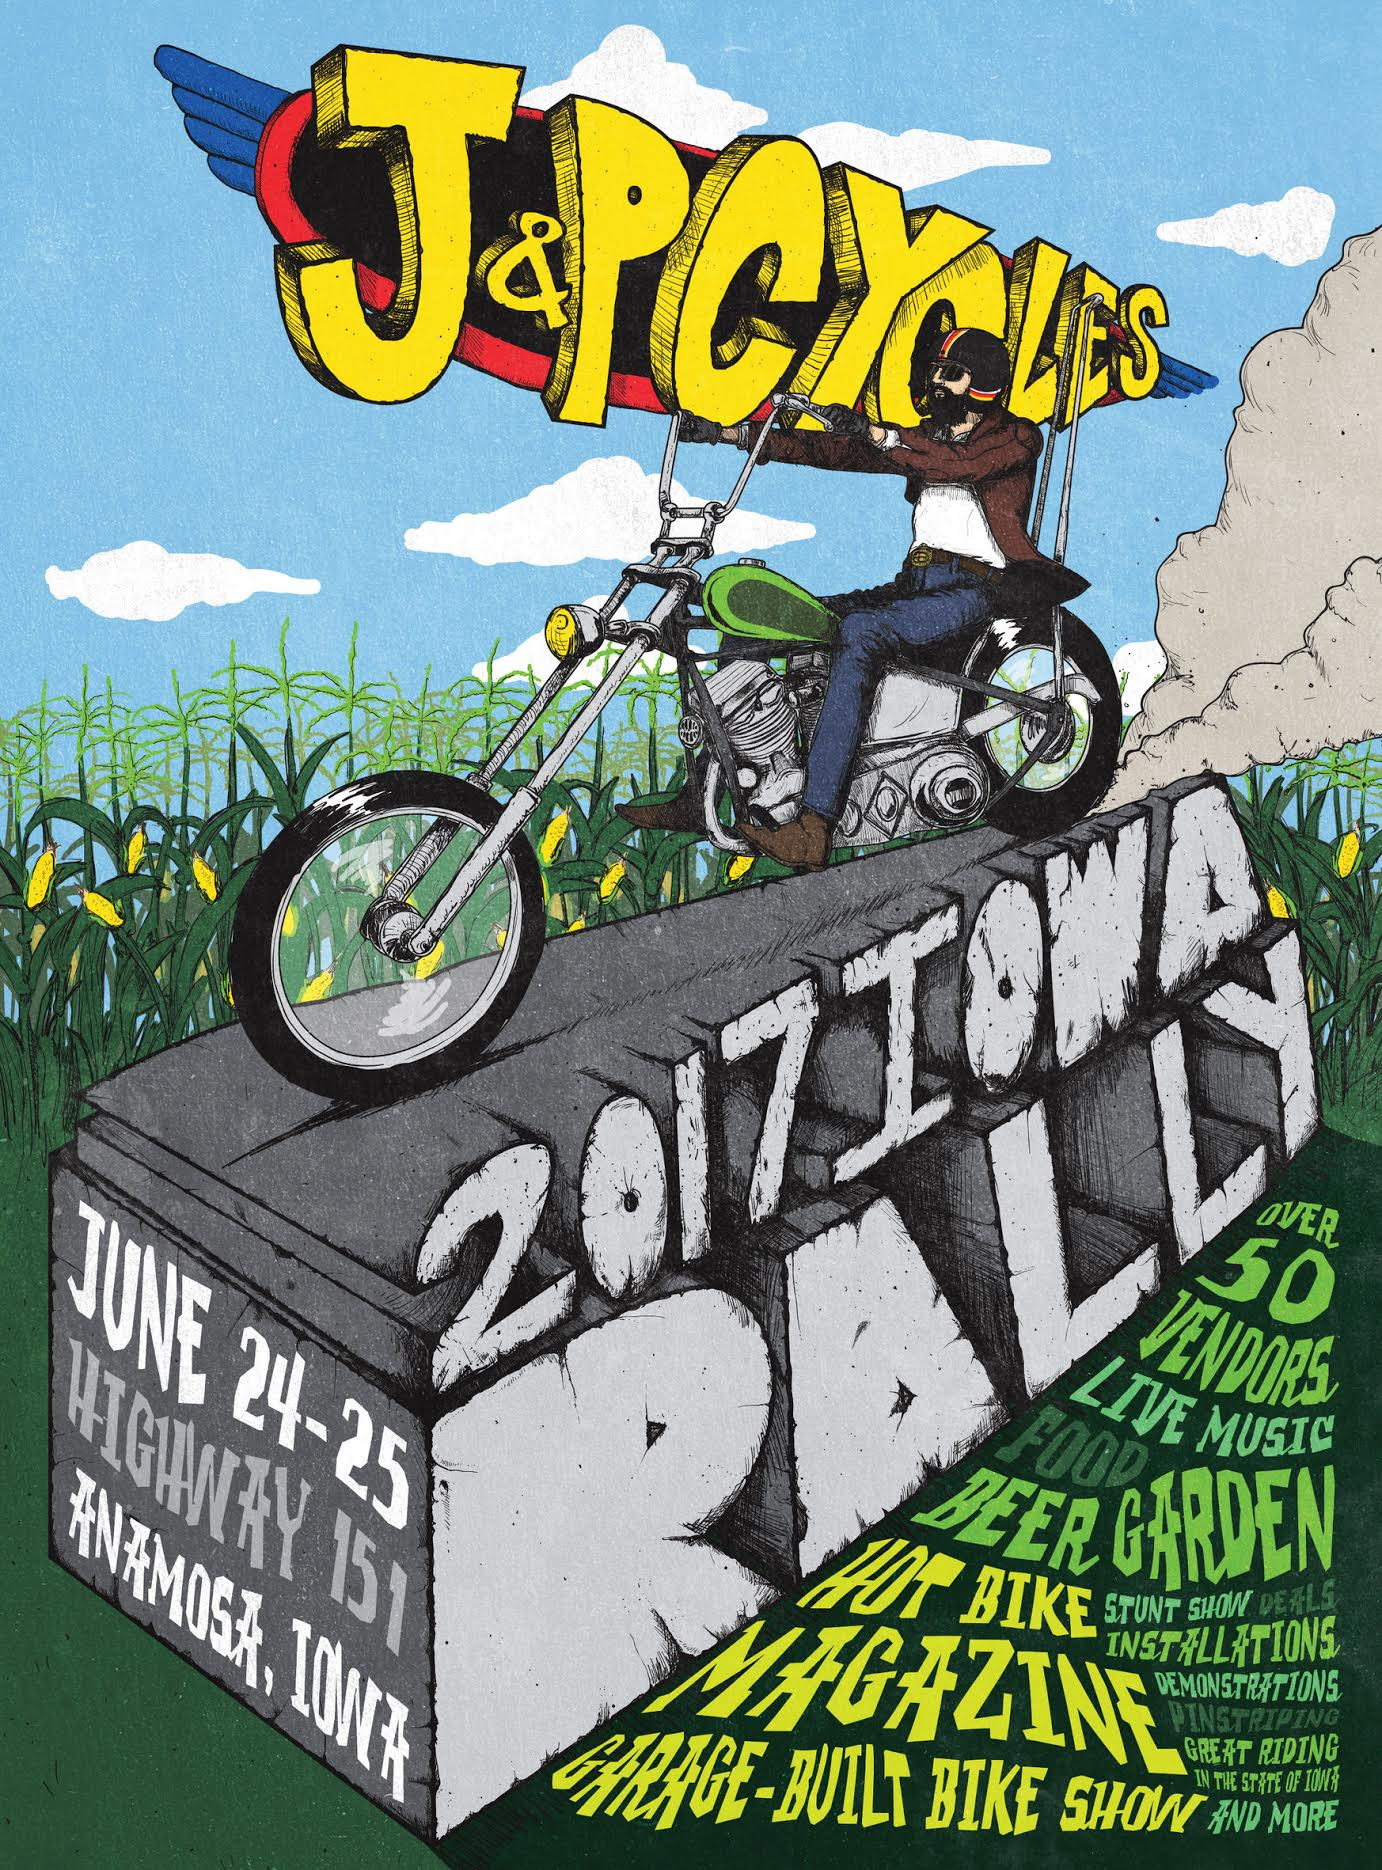 J&P Cycles Iowa Rally: Bigger, Bolder and Host to 2017 National Garage Build-Off Competition